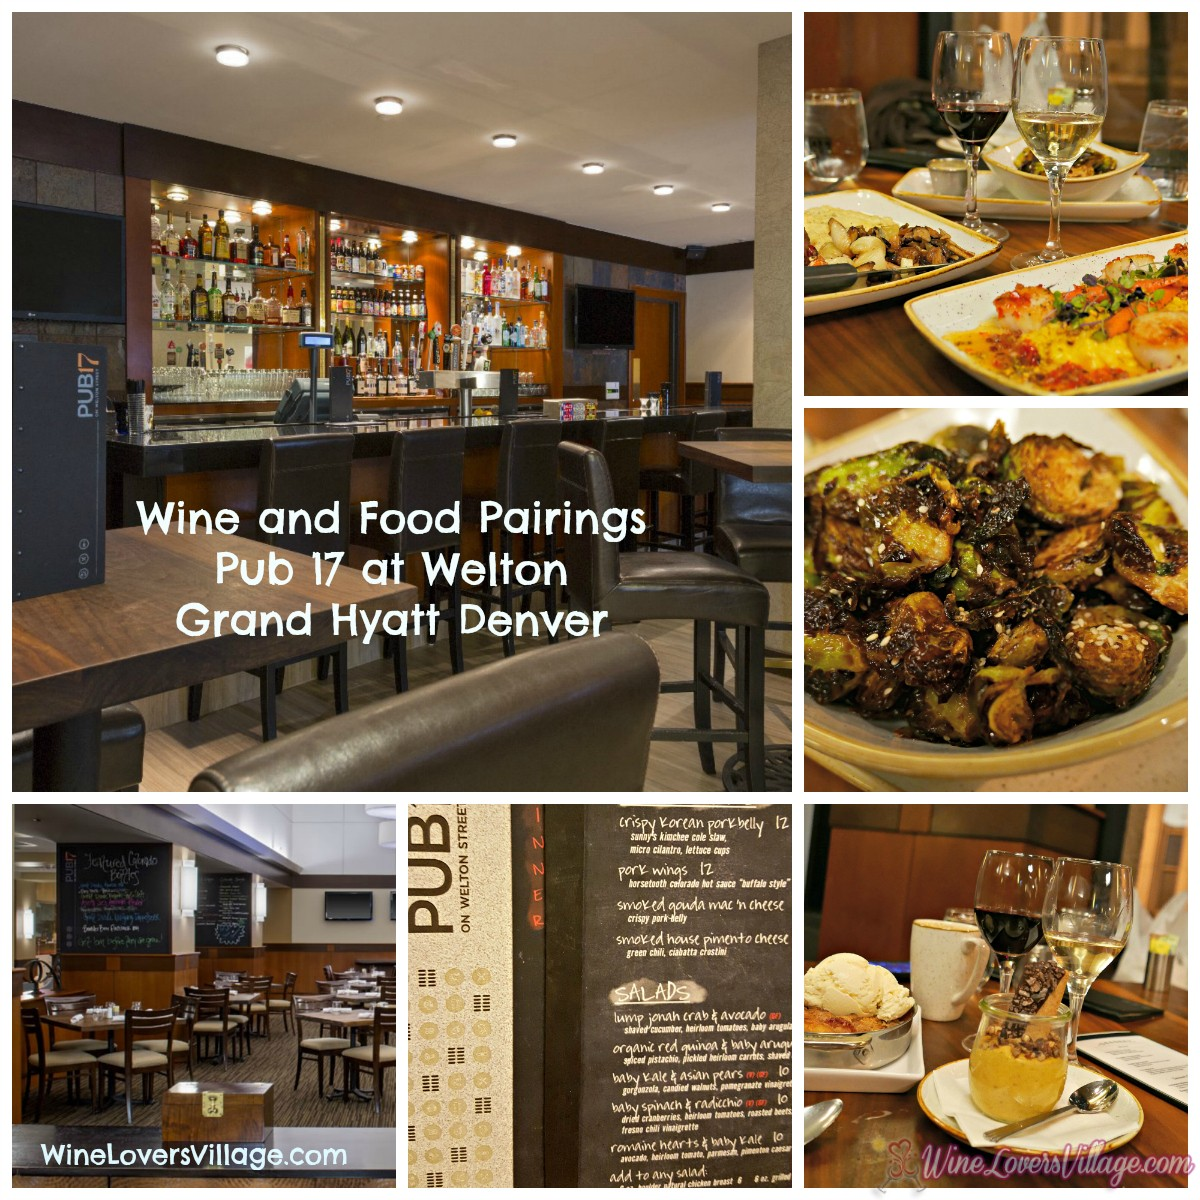 Wine and food pairings at downtown restaurant Denver's Pub 17 on Welton, Grand Hyatt Denver.